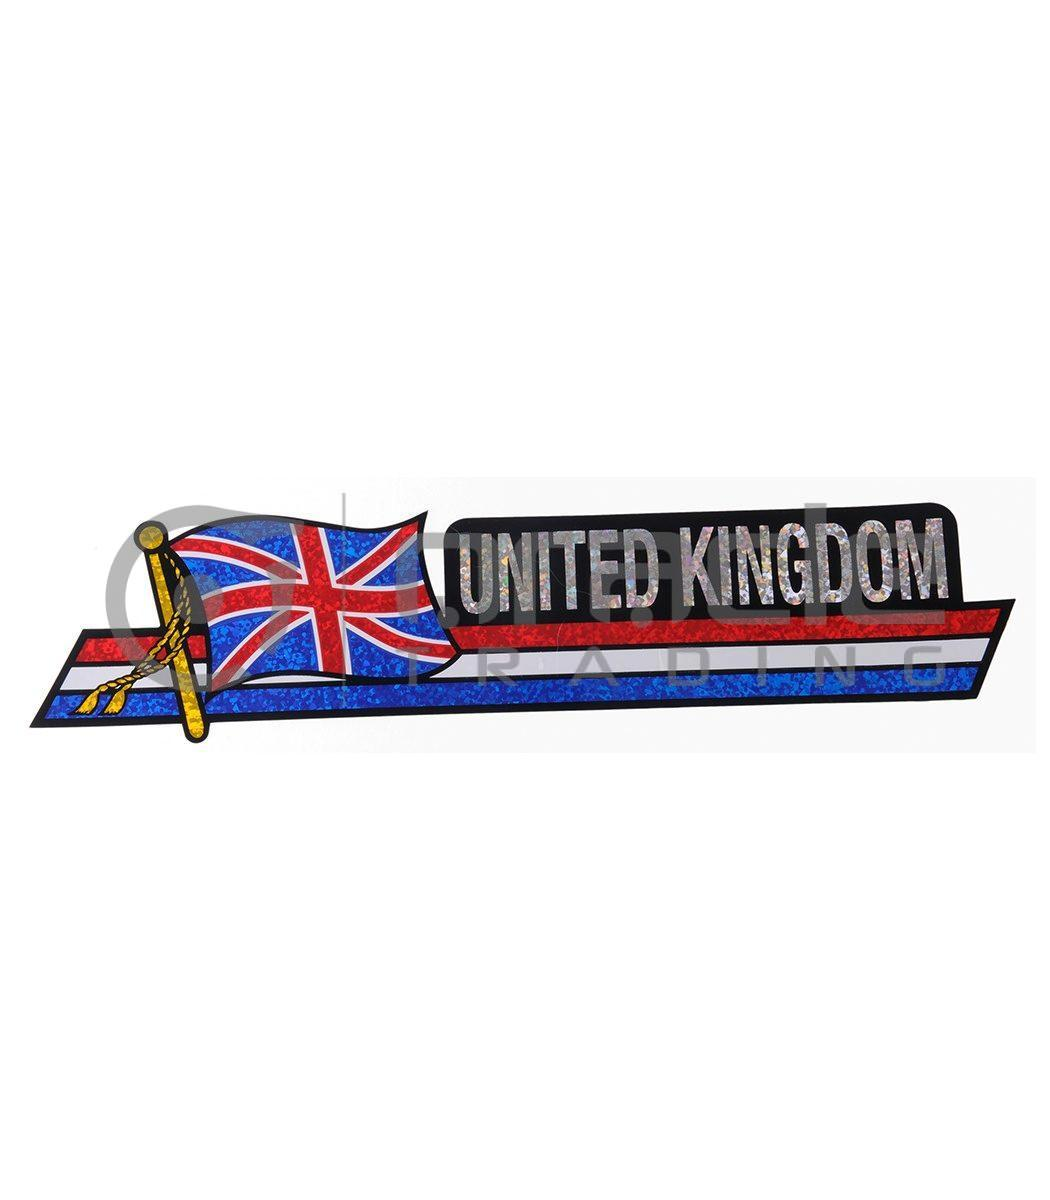 UK Long Bumper Sticker (United Kingdom)